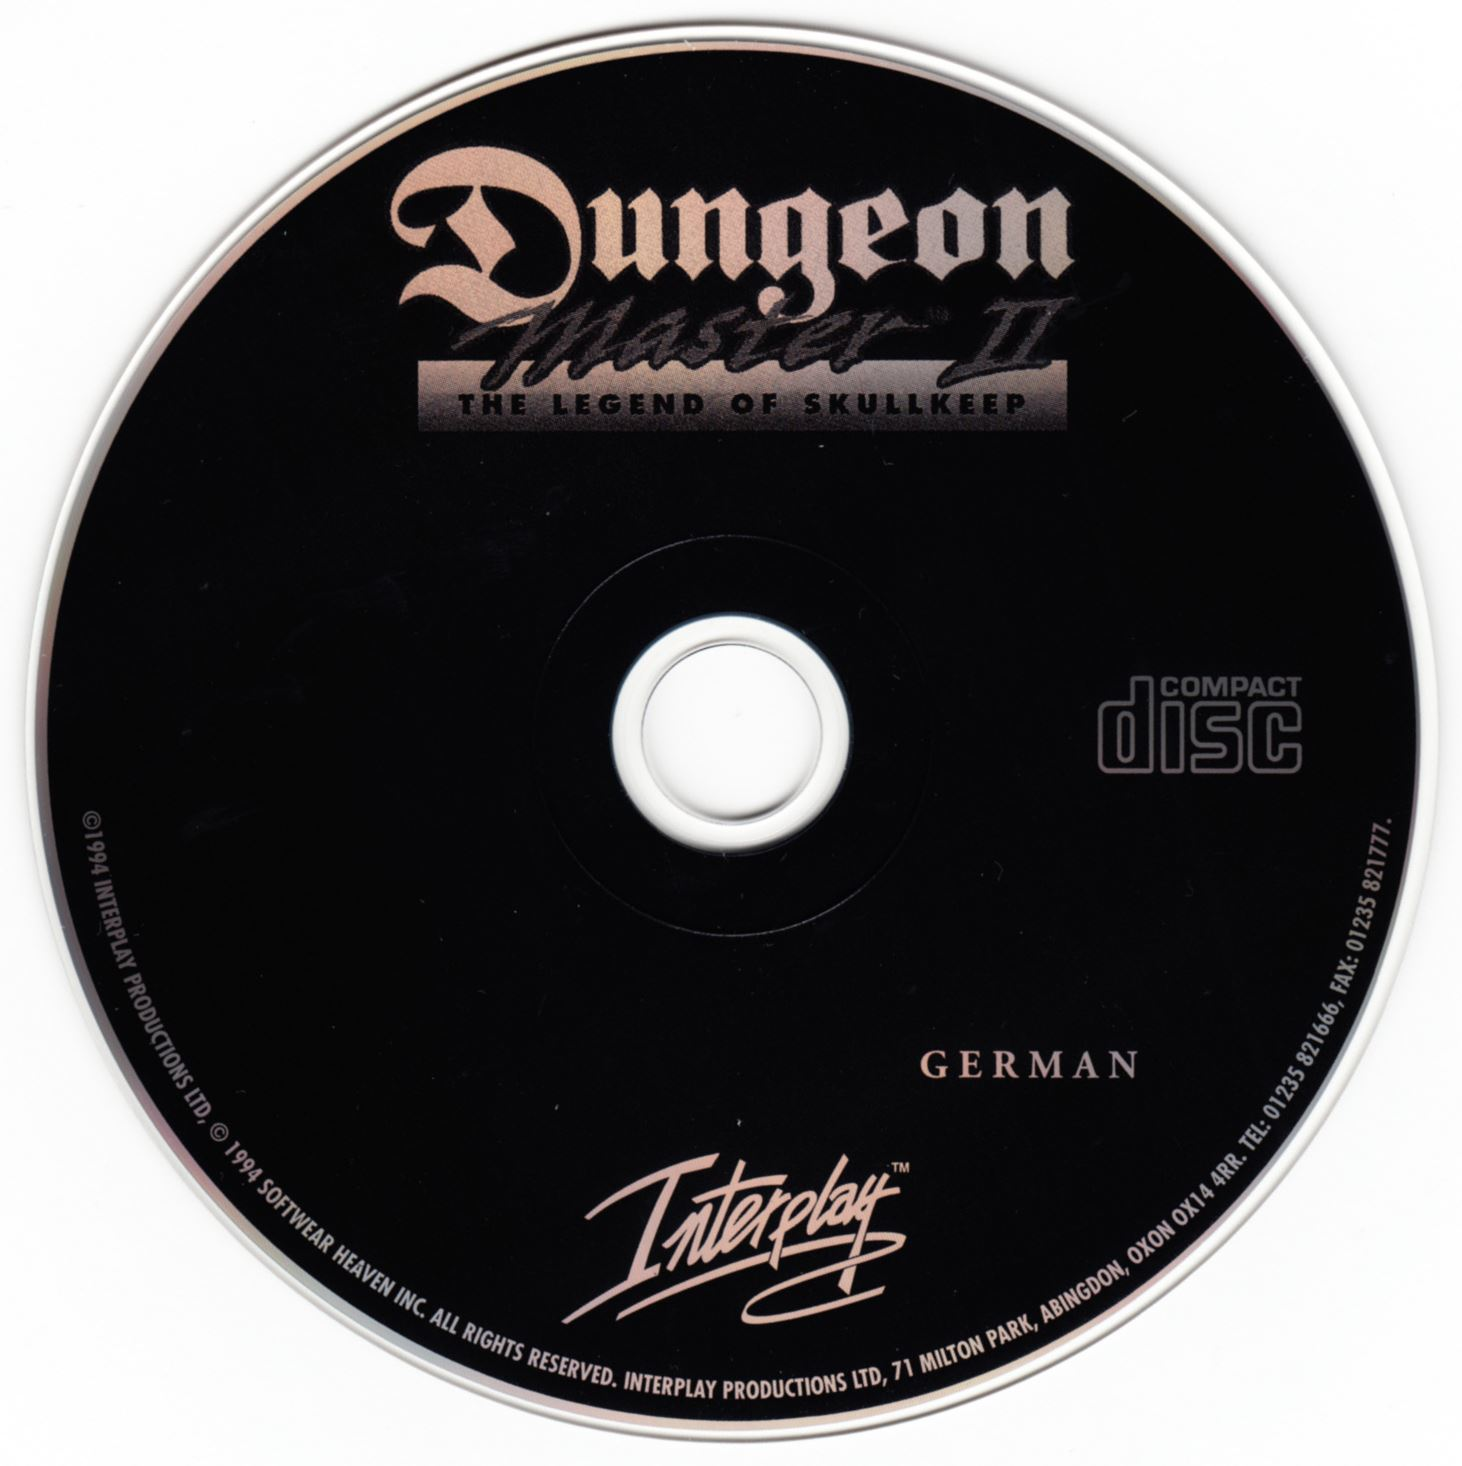 Game - Dungeon Master II - DE - PC - CD Version - Compact Disc - Front - Scan